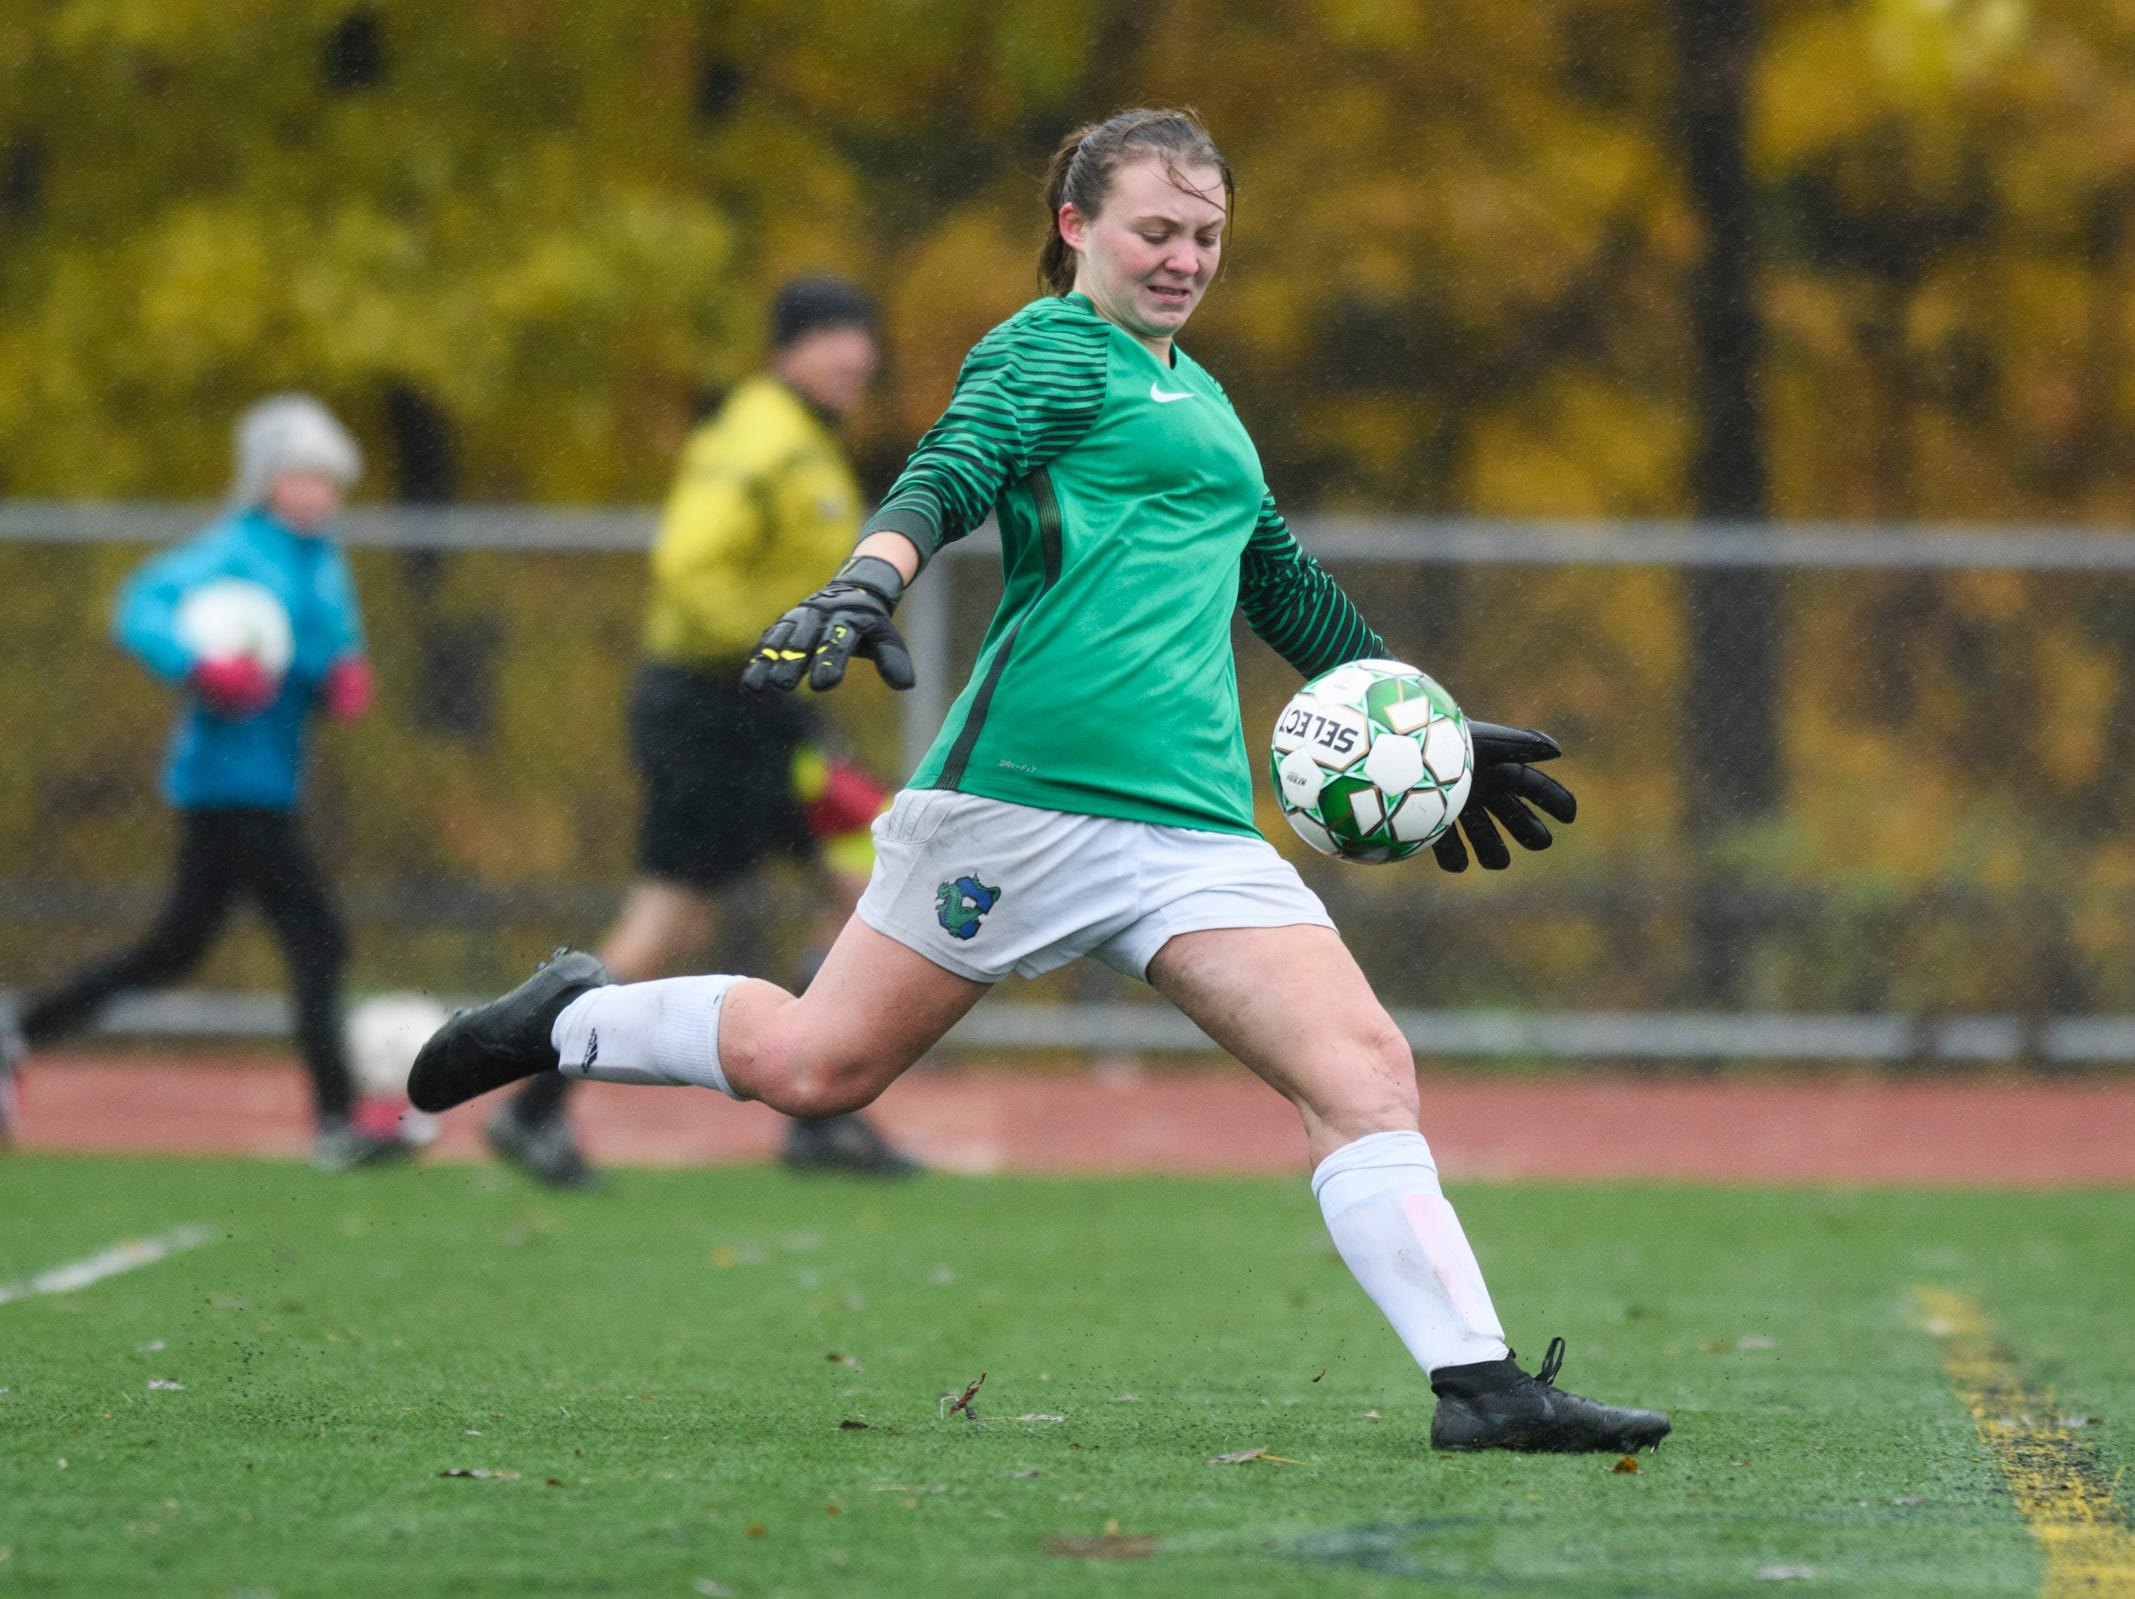 Colchester goalie Olivia Moore kicks the ball down the field during the division I girls soccer championship game between the Colchester Lakers and the Champlain Valley Union Redhawks at Buck Hard Field on Saturday morning November 3, 2018 in Burlington.